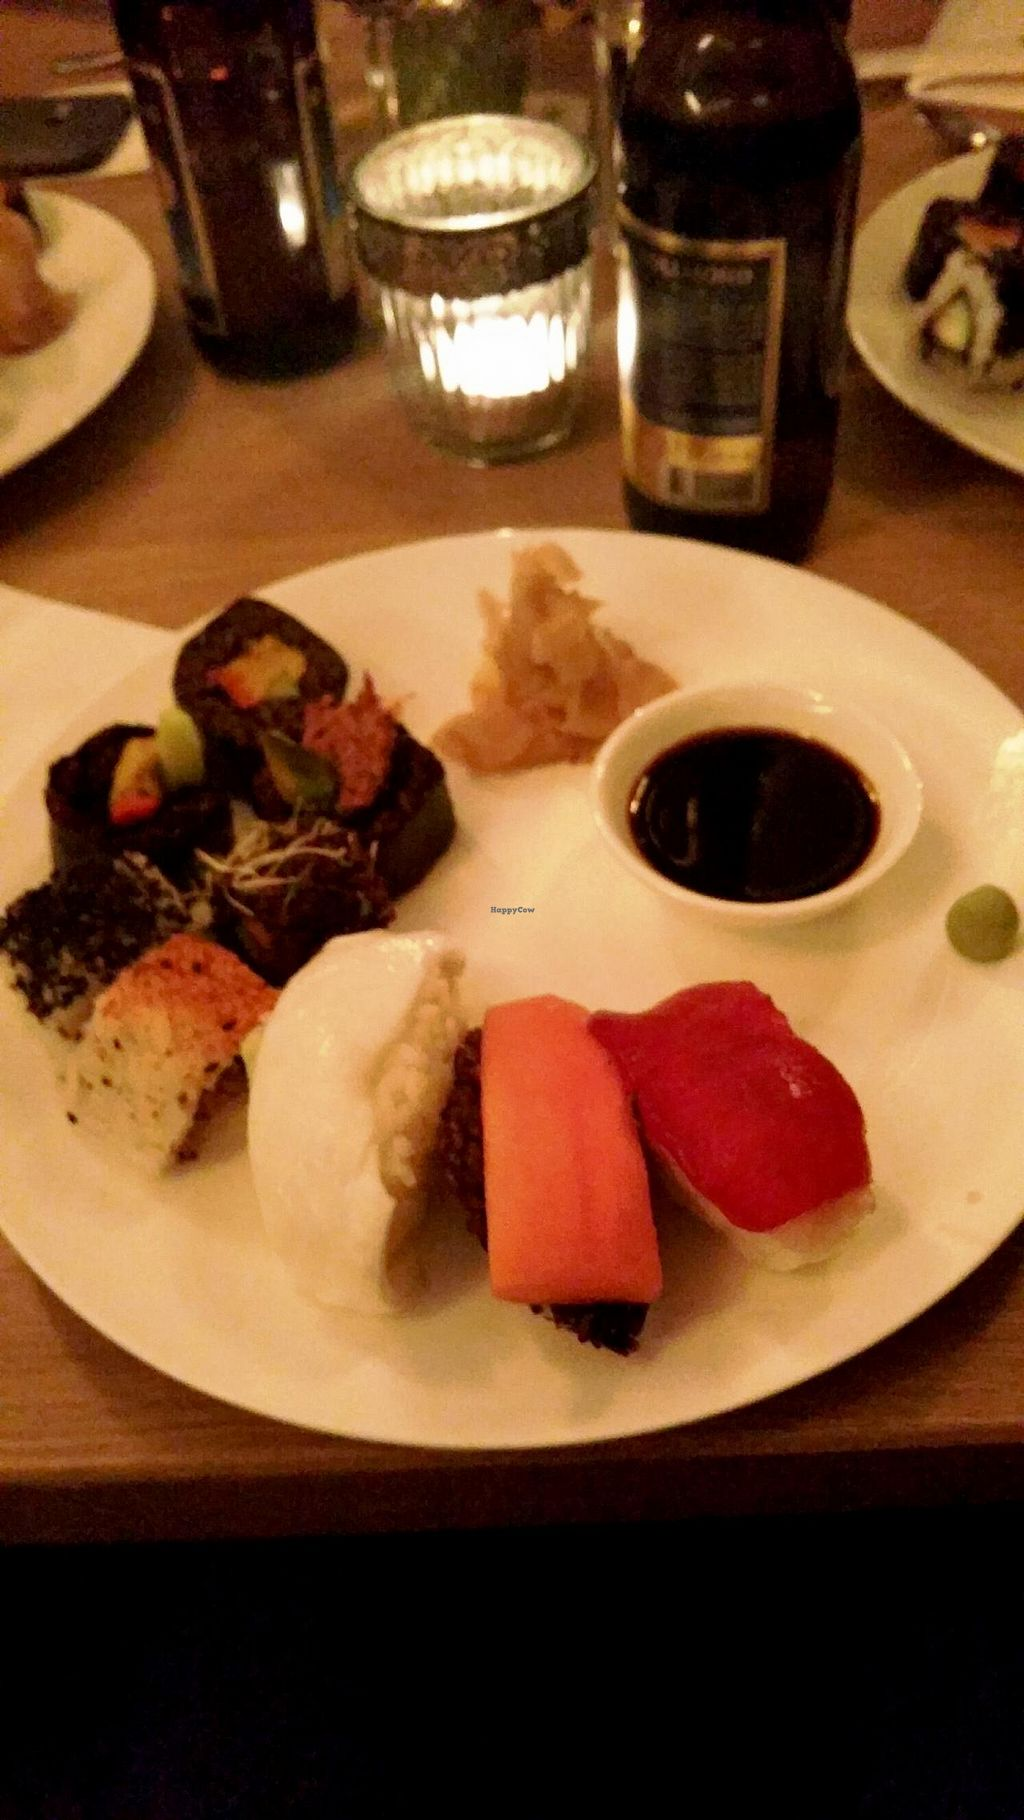 """Photo of Mohini  by <a href=""""/members/profile/SueClesh"""">SueClesh</a> <br/>Sushi Rock n' Roll & Boutique Nigiri - organized by Biosumo <br/> March 25, 2015  - <a href='/contact/abuse/image/33884/96997'>Report</a>"""